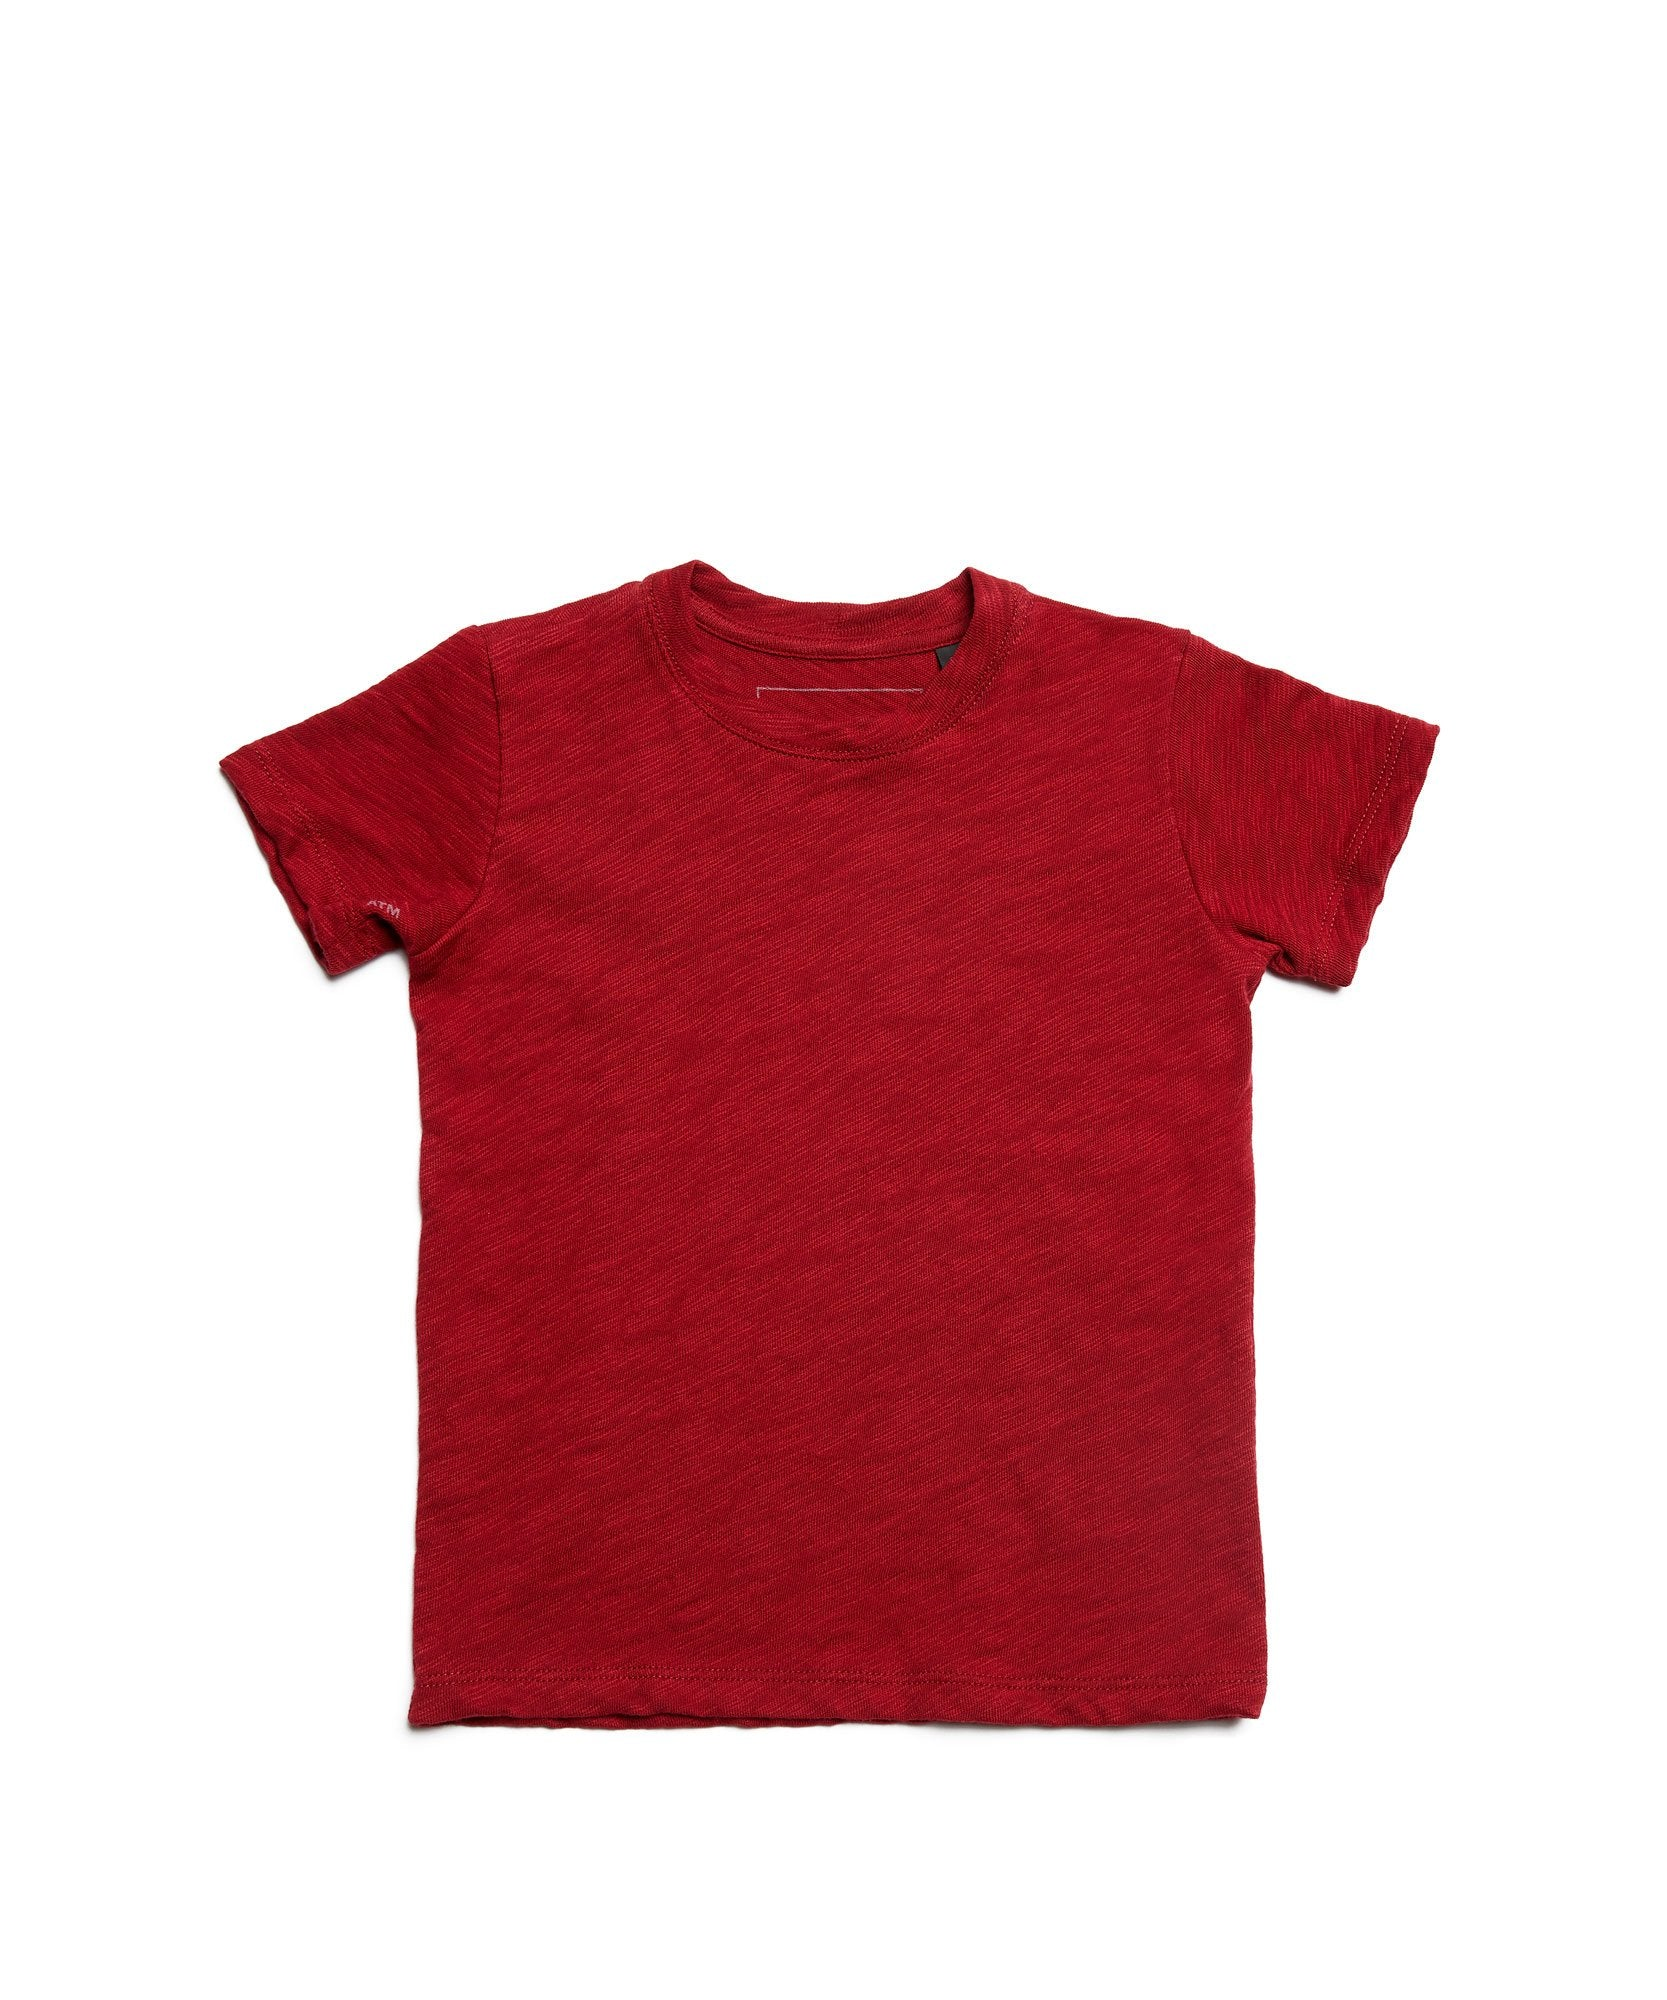 Red Kids Slub Jersey Short Sleeve Tee - Kid's Cotton Short Sleeve Tee by ATM Anthony Thomas Melillo